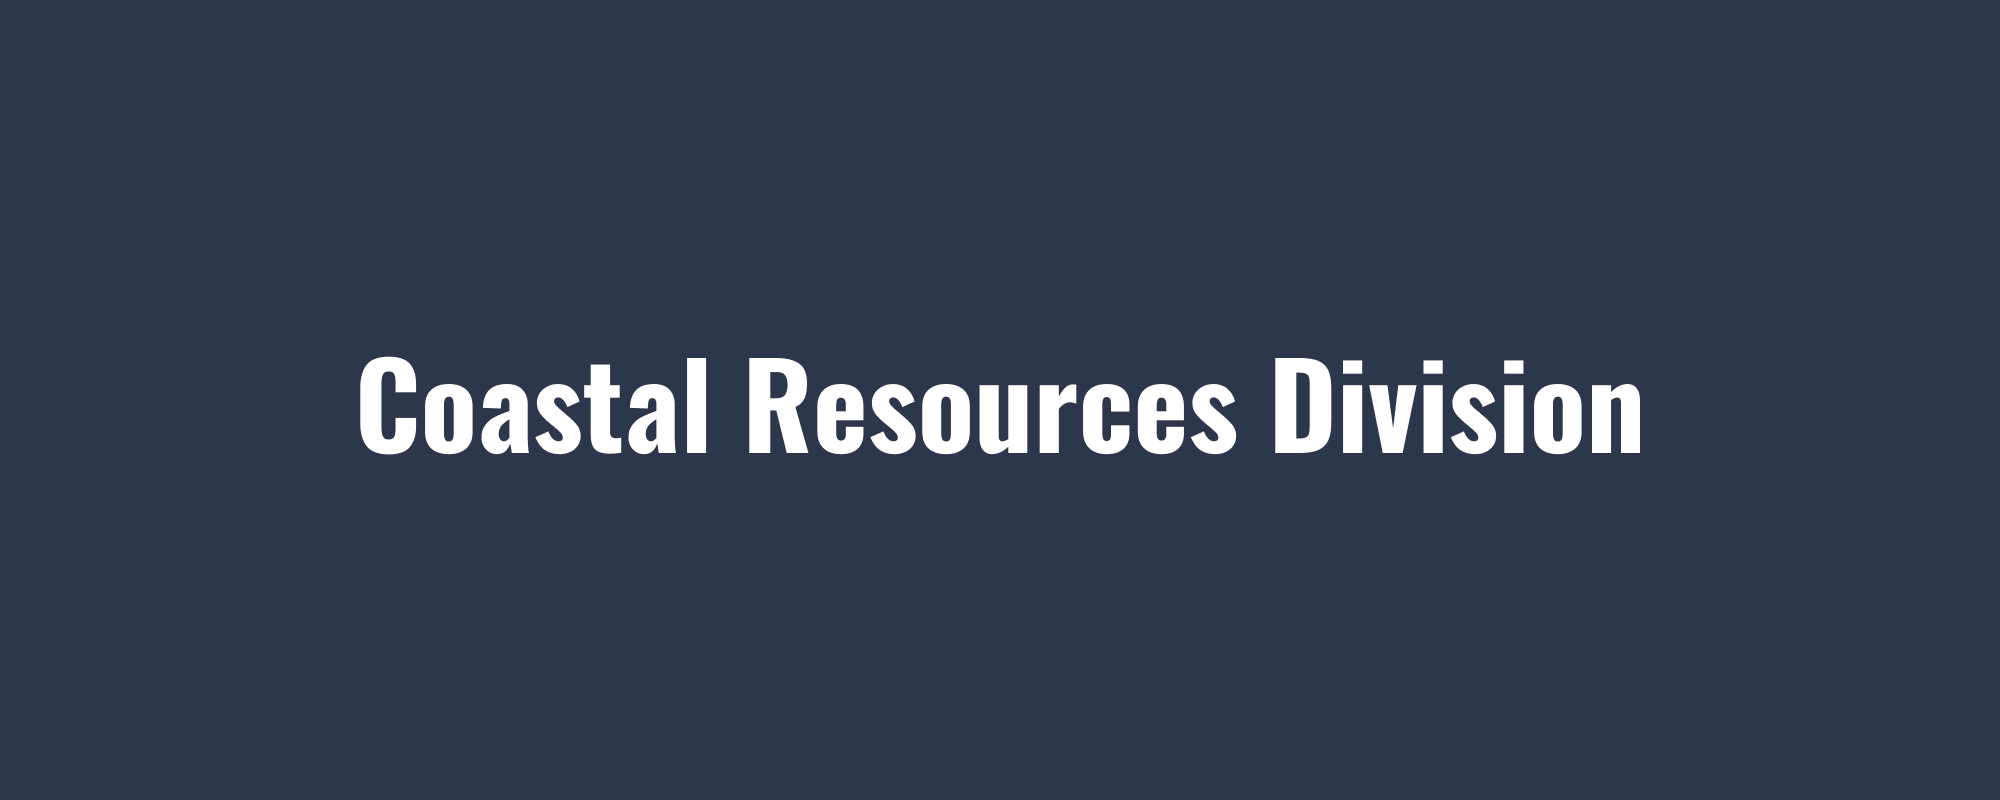 Coastal Resources Division